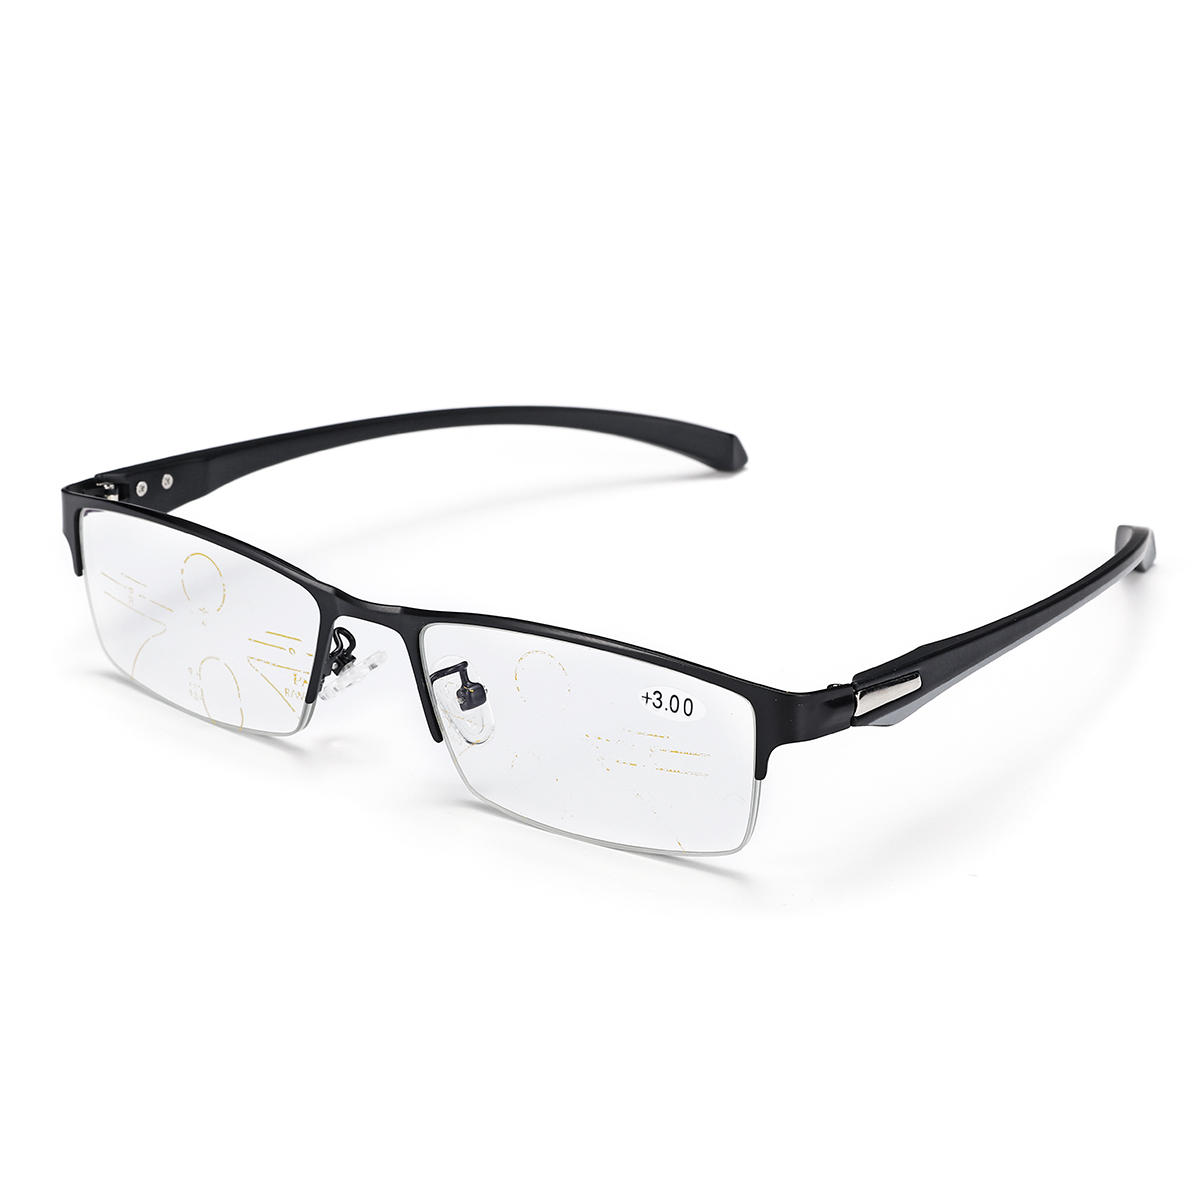 Progressive Multi Focus Photochromic Half Rimless Reading Glasses Sunglasses